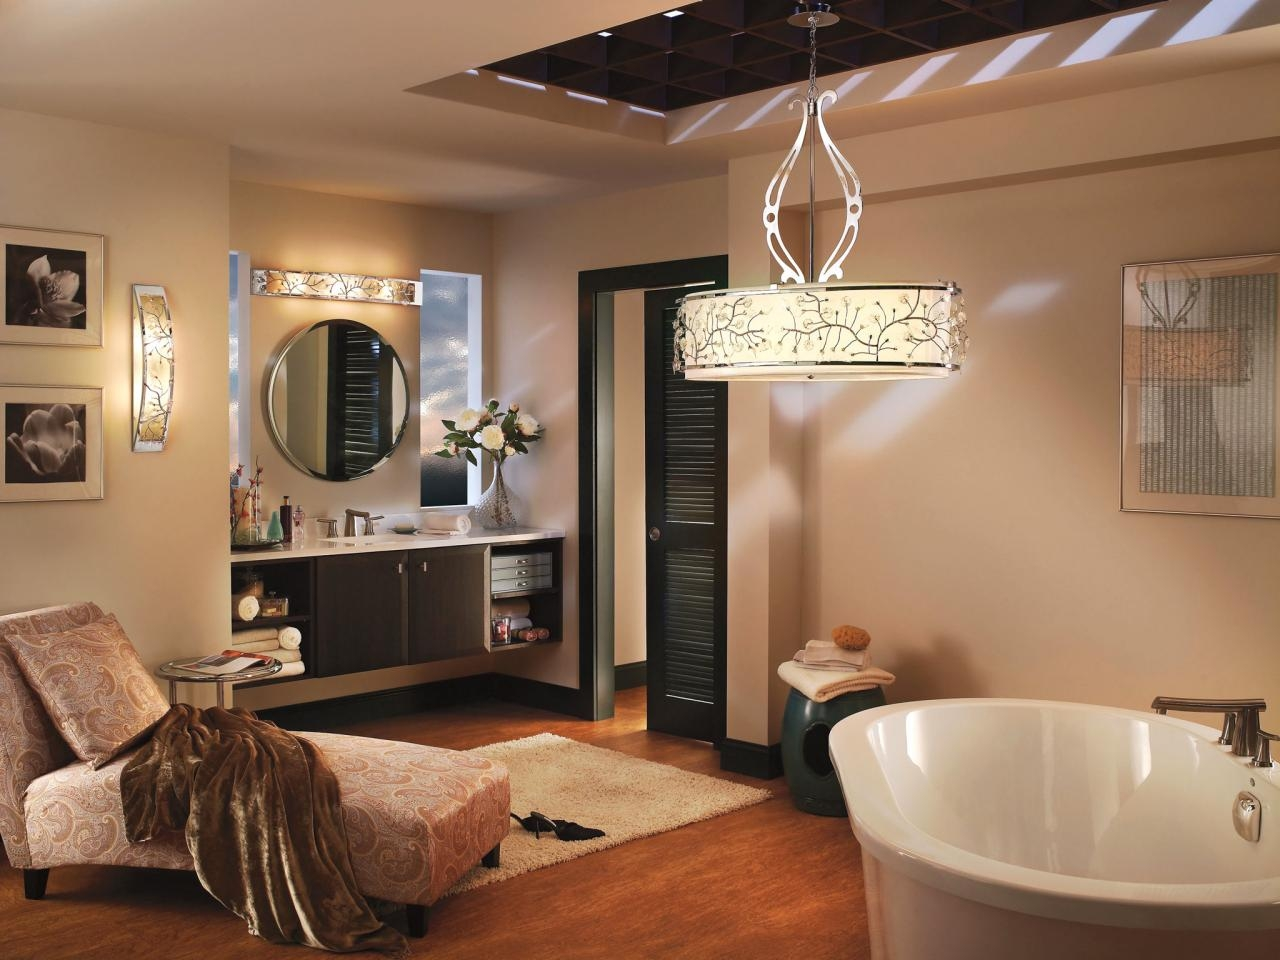 Bathroom Lamps Pertaining To Bathroom Chandelier Wall Lights (Image 3 of 25)